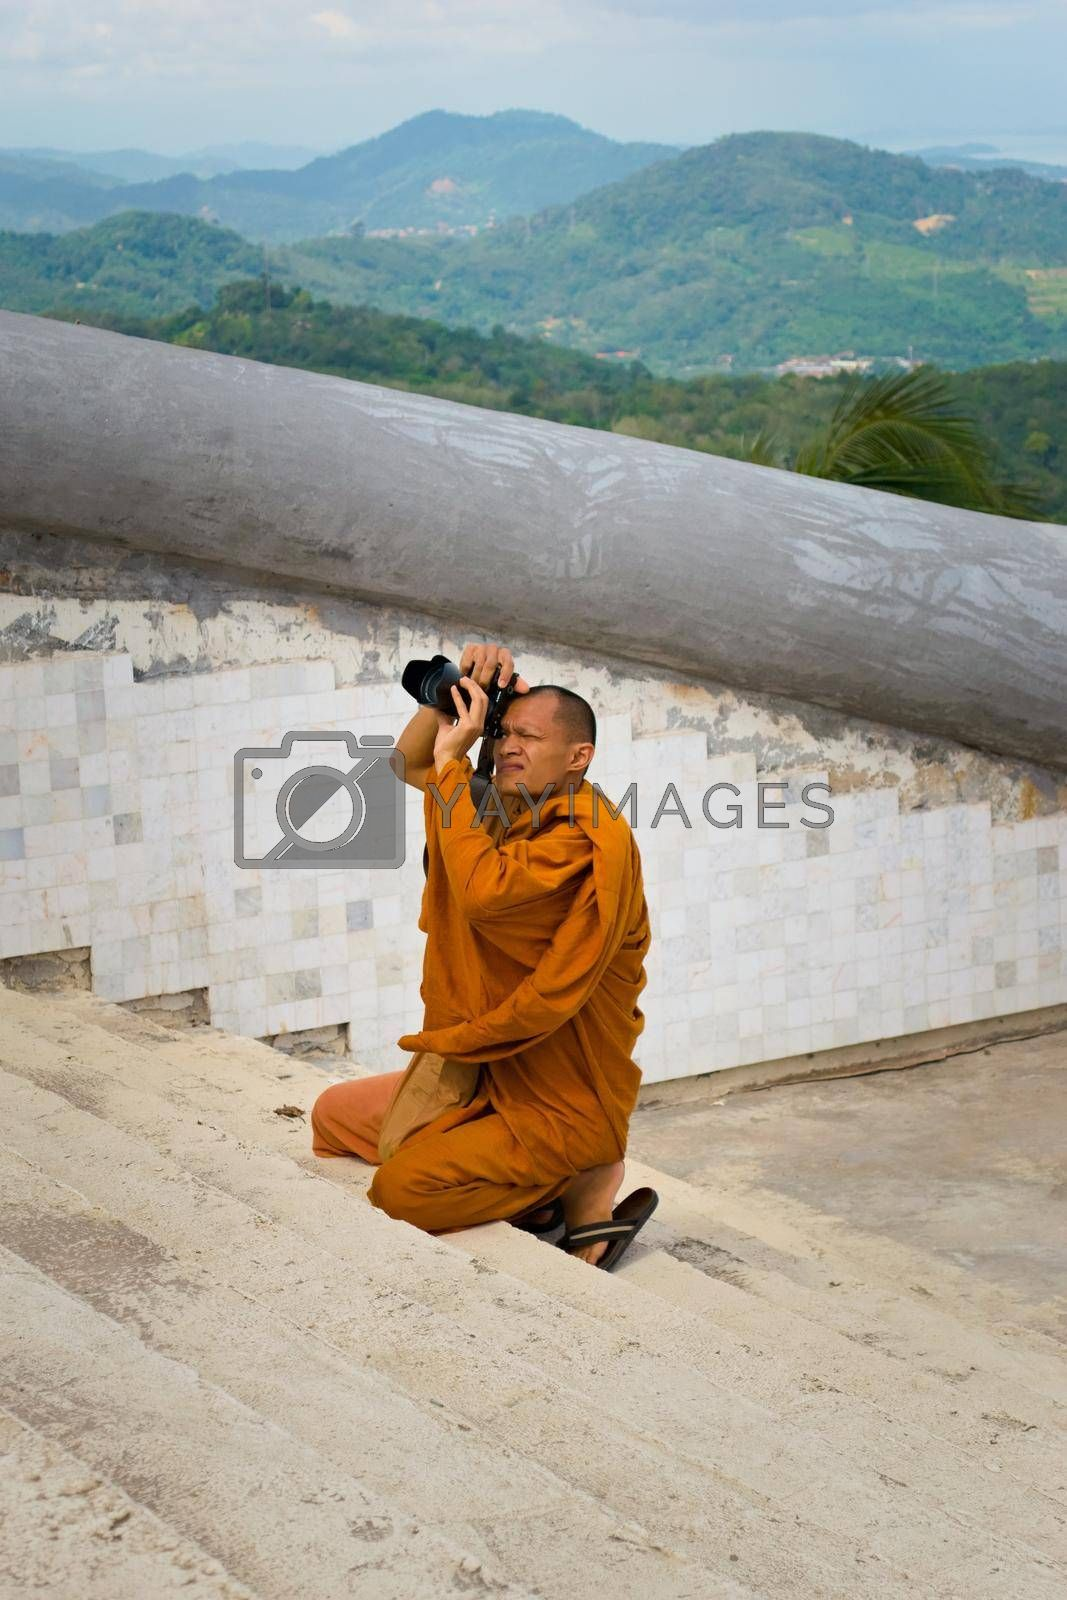 Royalty free image of 2019-11-06 / Phuket, Thailand - A buddhing monk in saffron robes kneels down to take a picture with a DSLR camera. by hernan_hyper